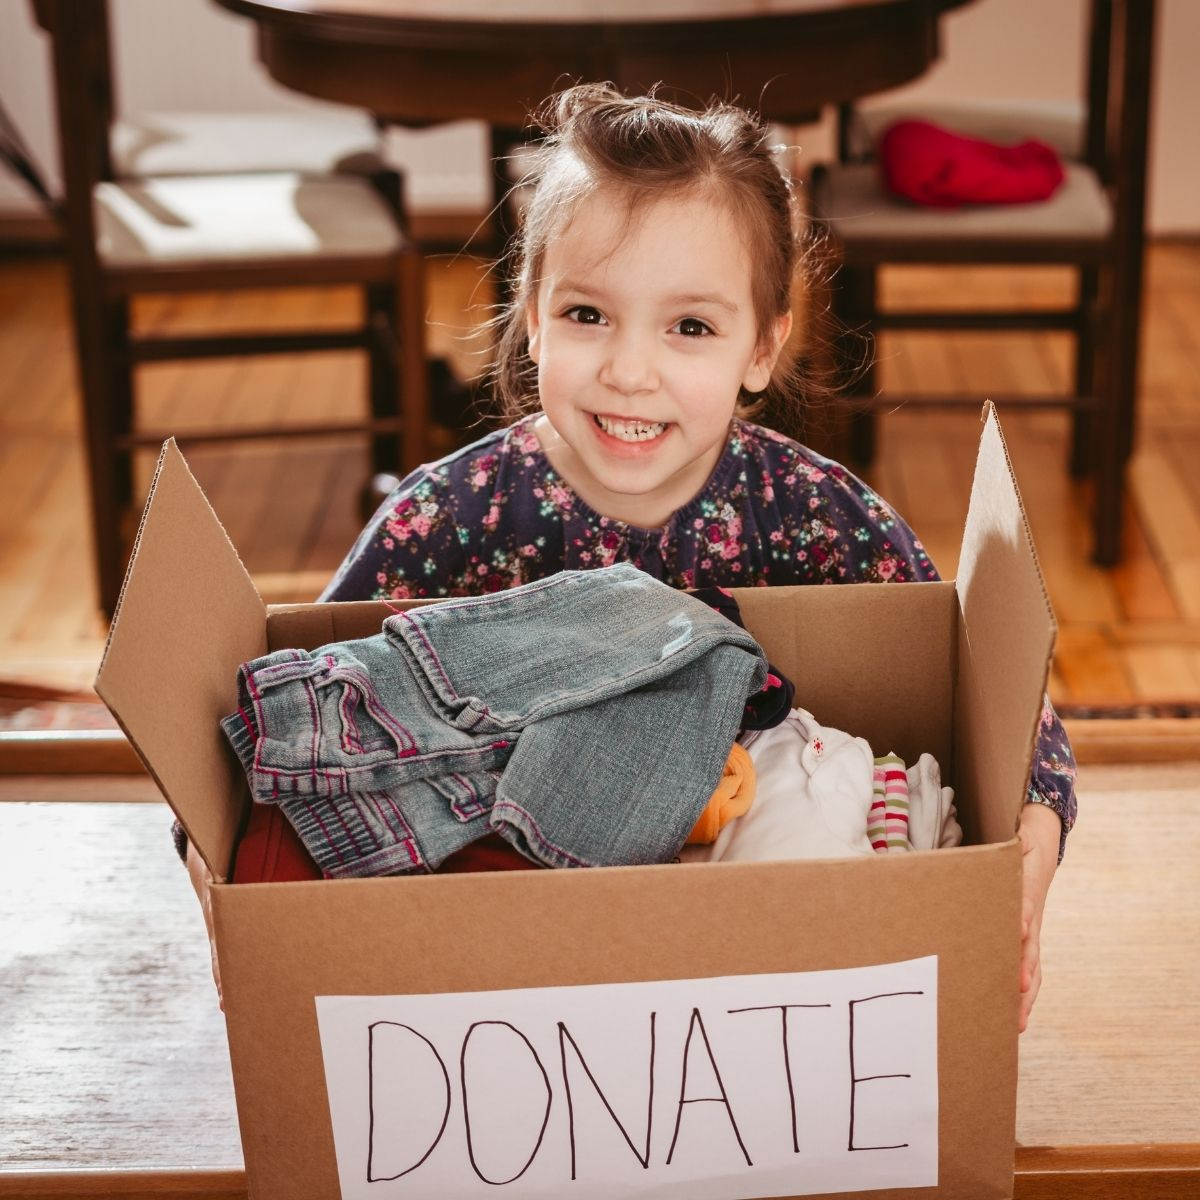 girl holding box of clothes for donation